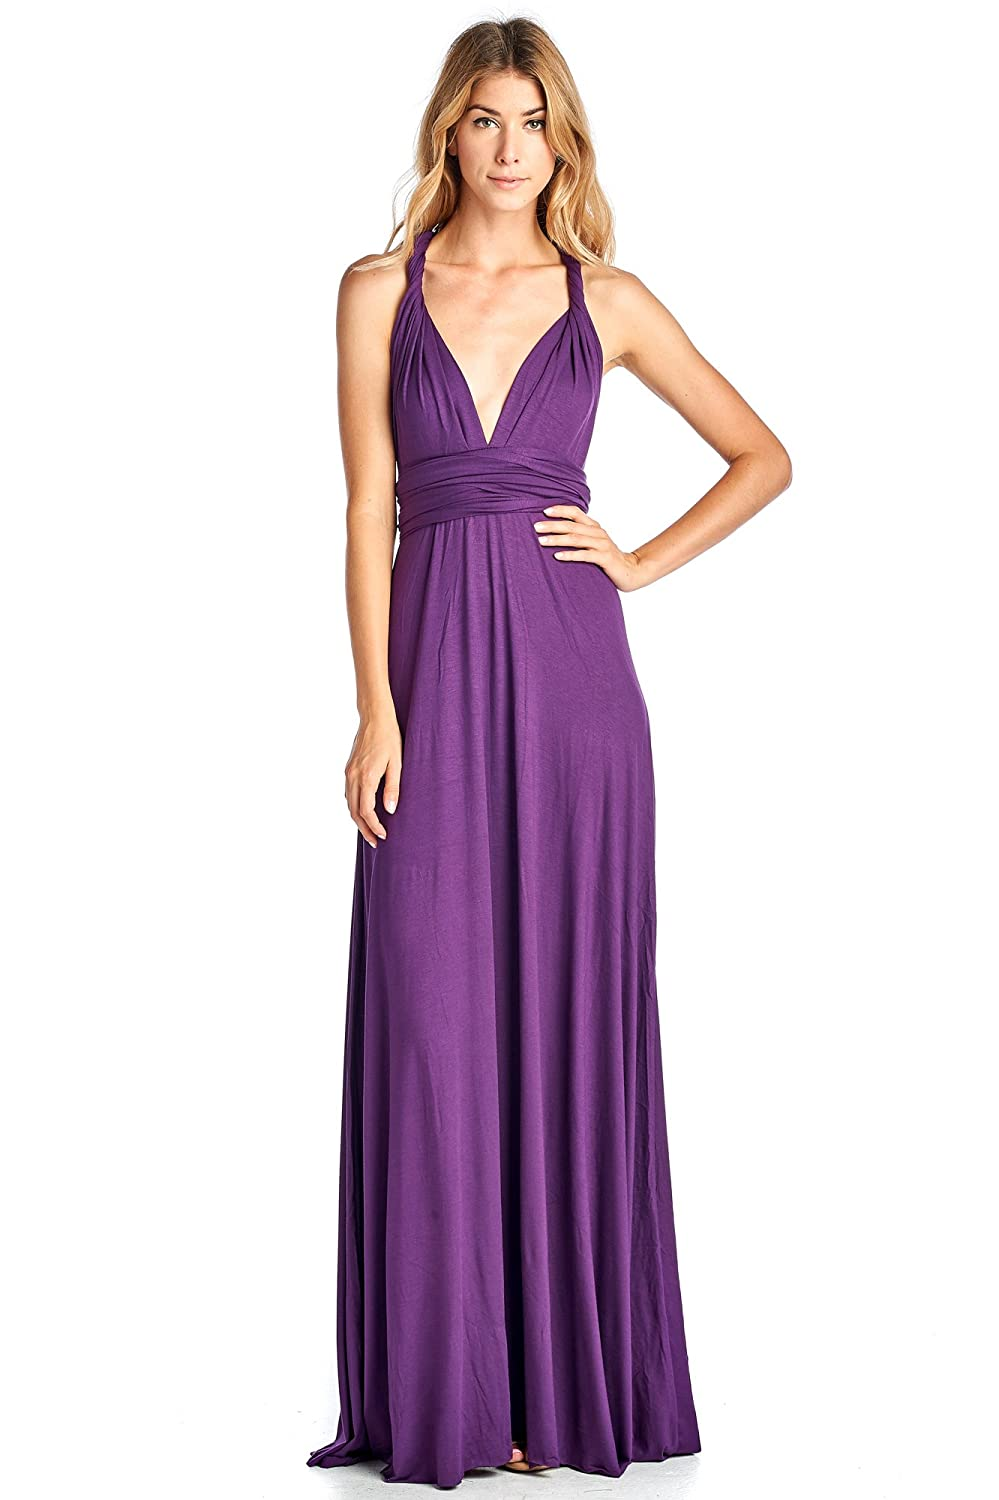 Lilac dress. What to wear 42